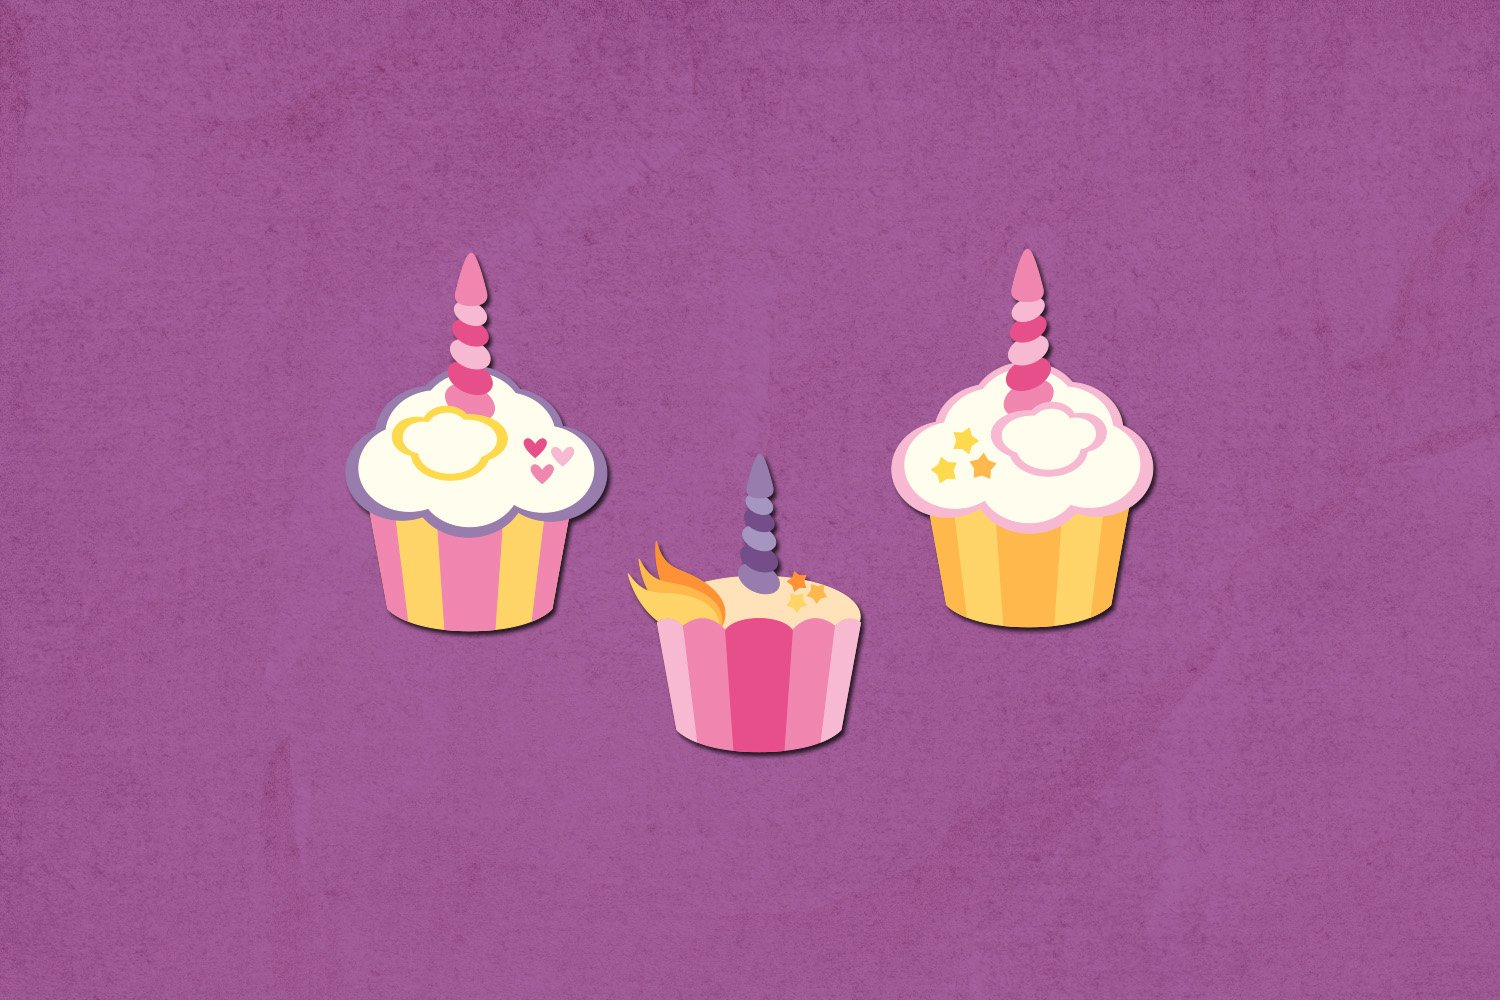 Unicorn cupcakes party illustrations example image 3